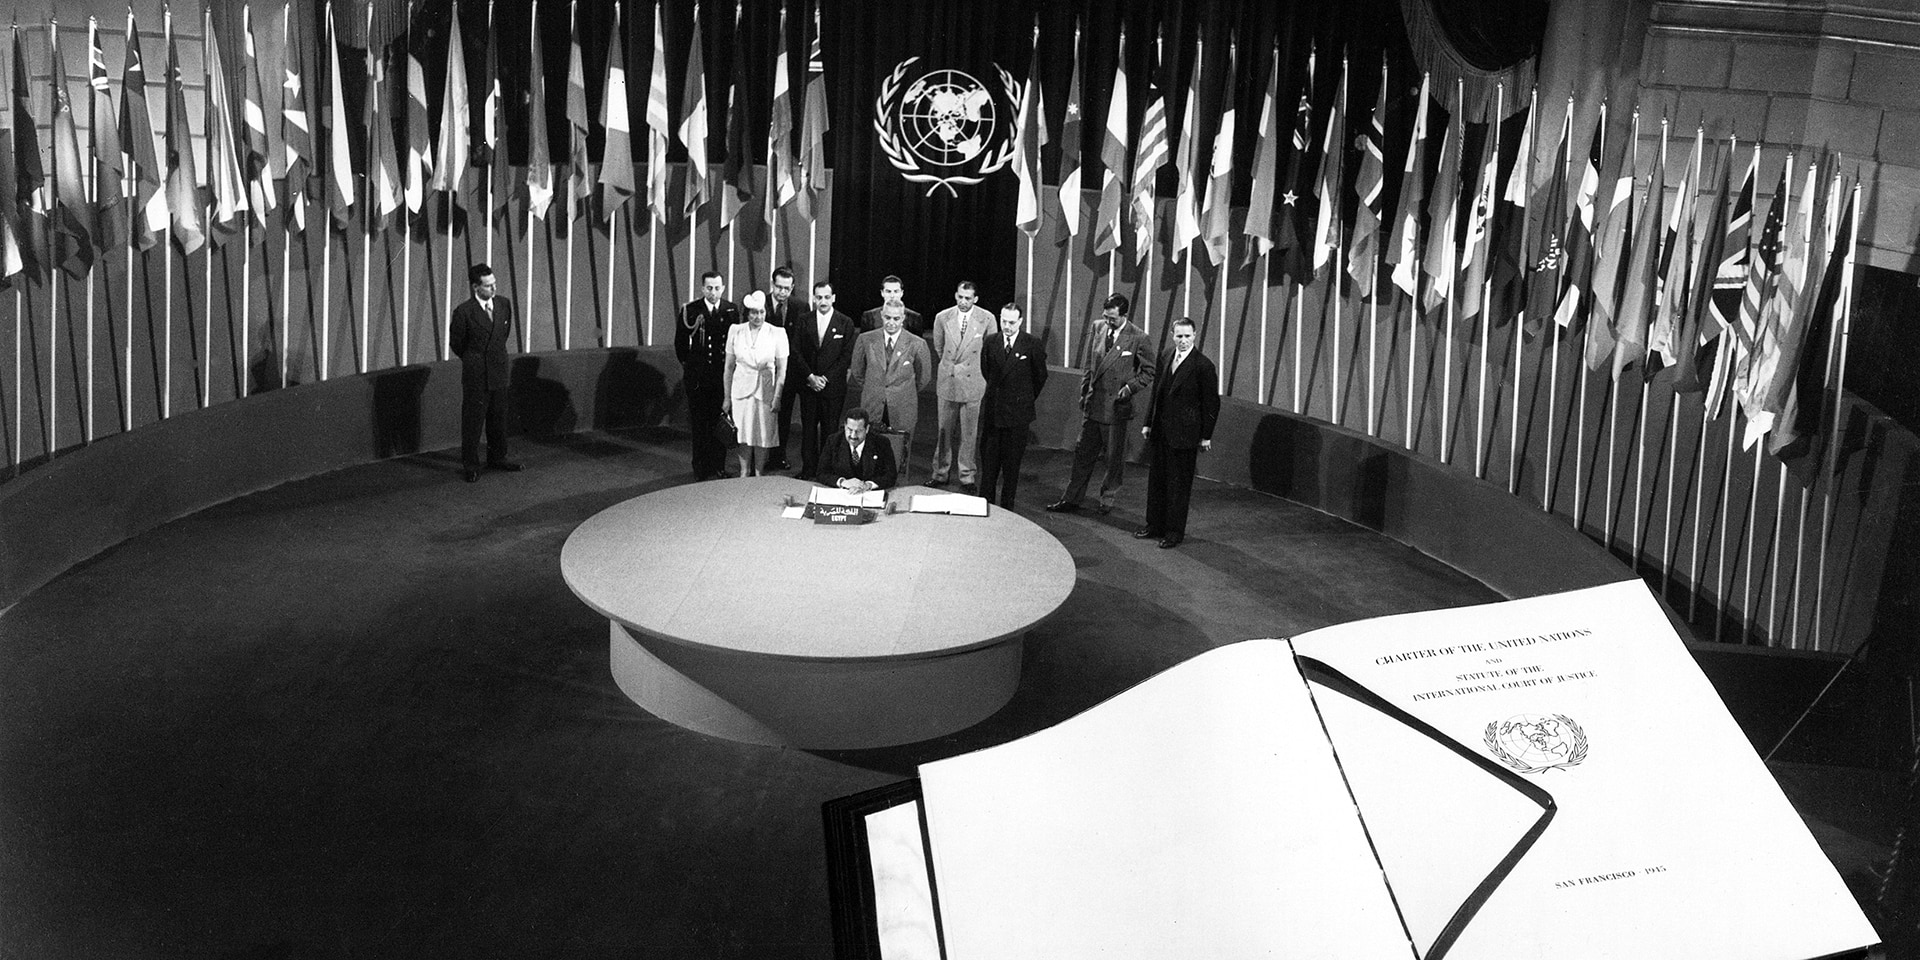 Egypt signing the UN Charter, with the Charter in the foreground.